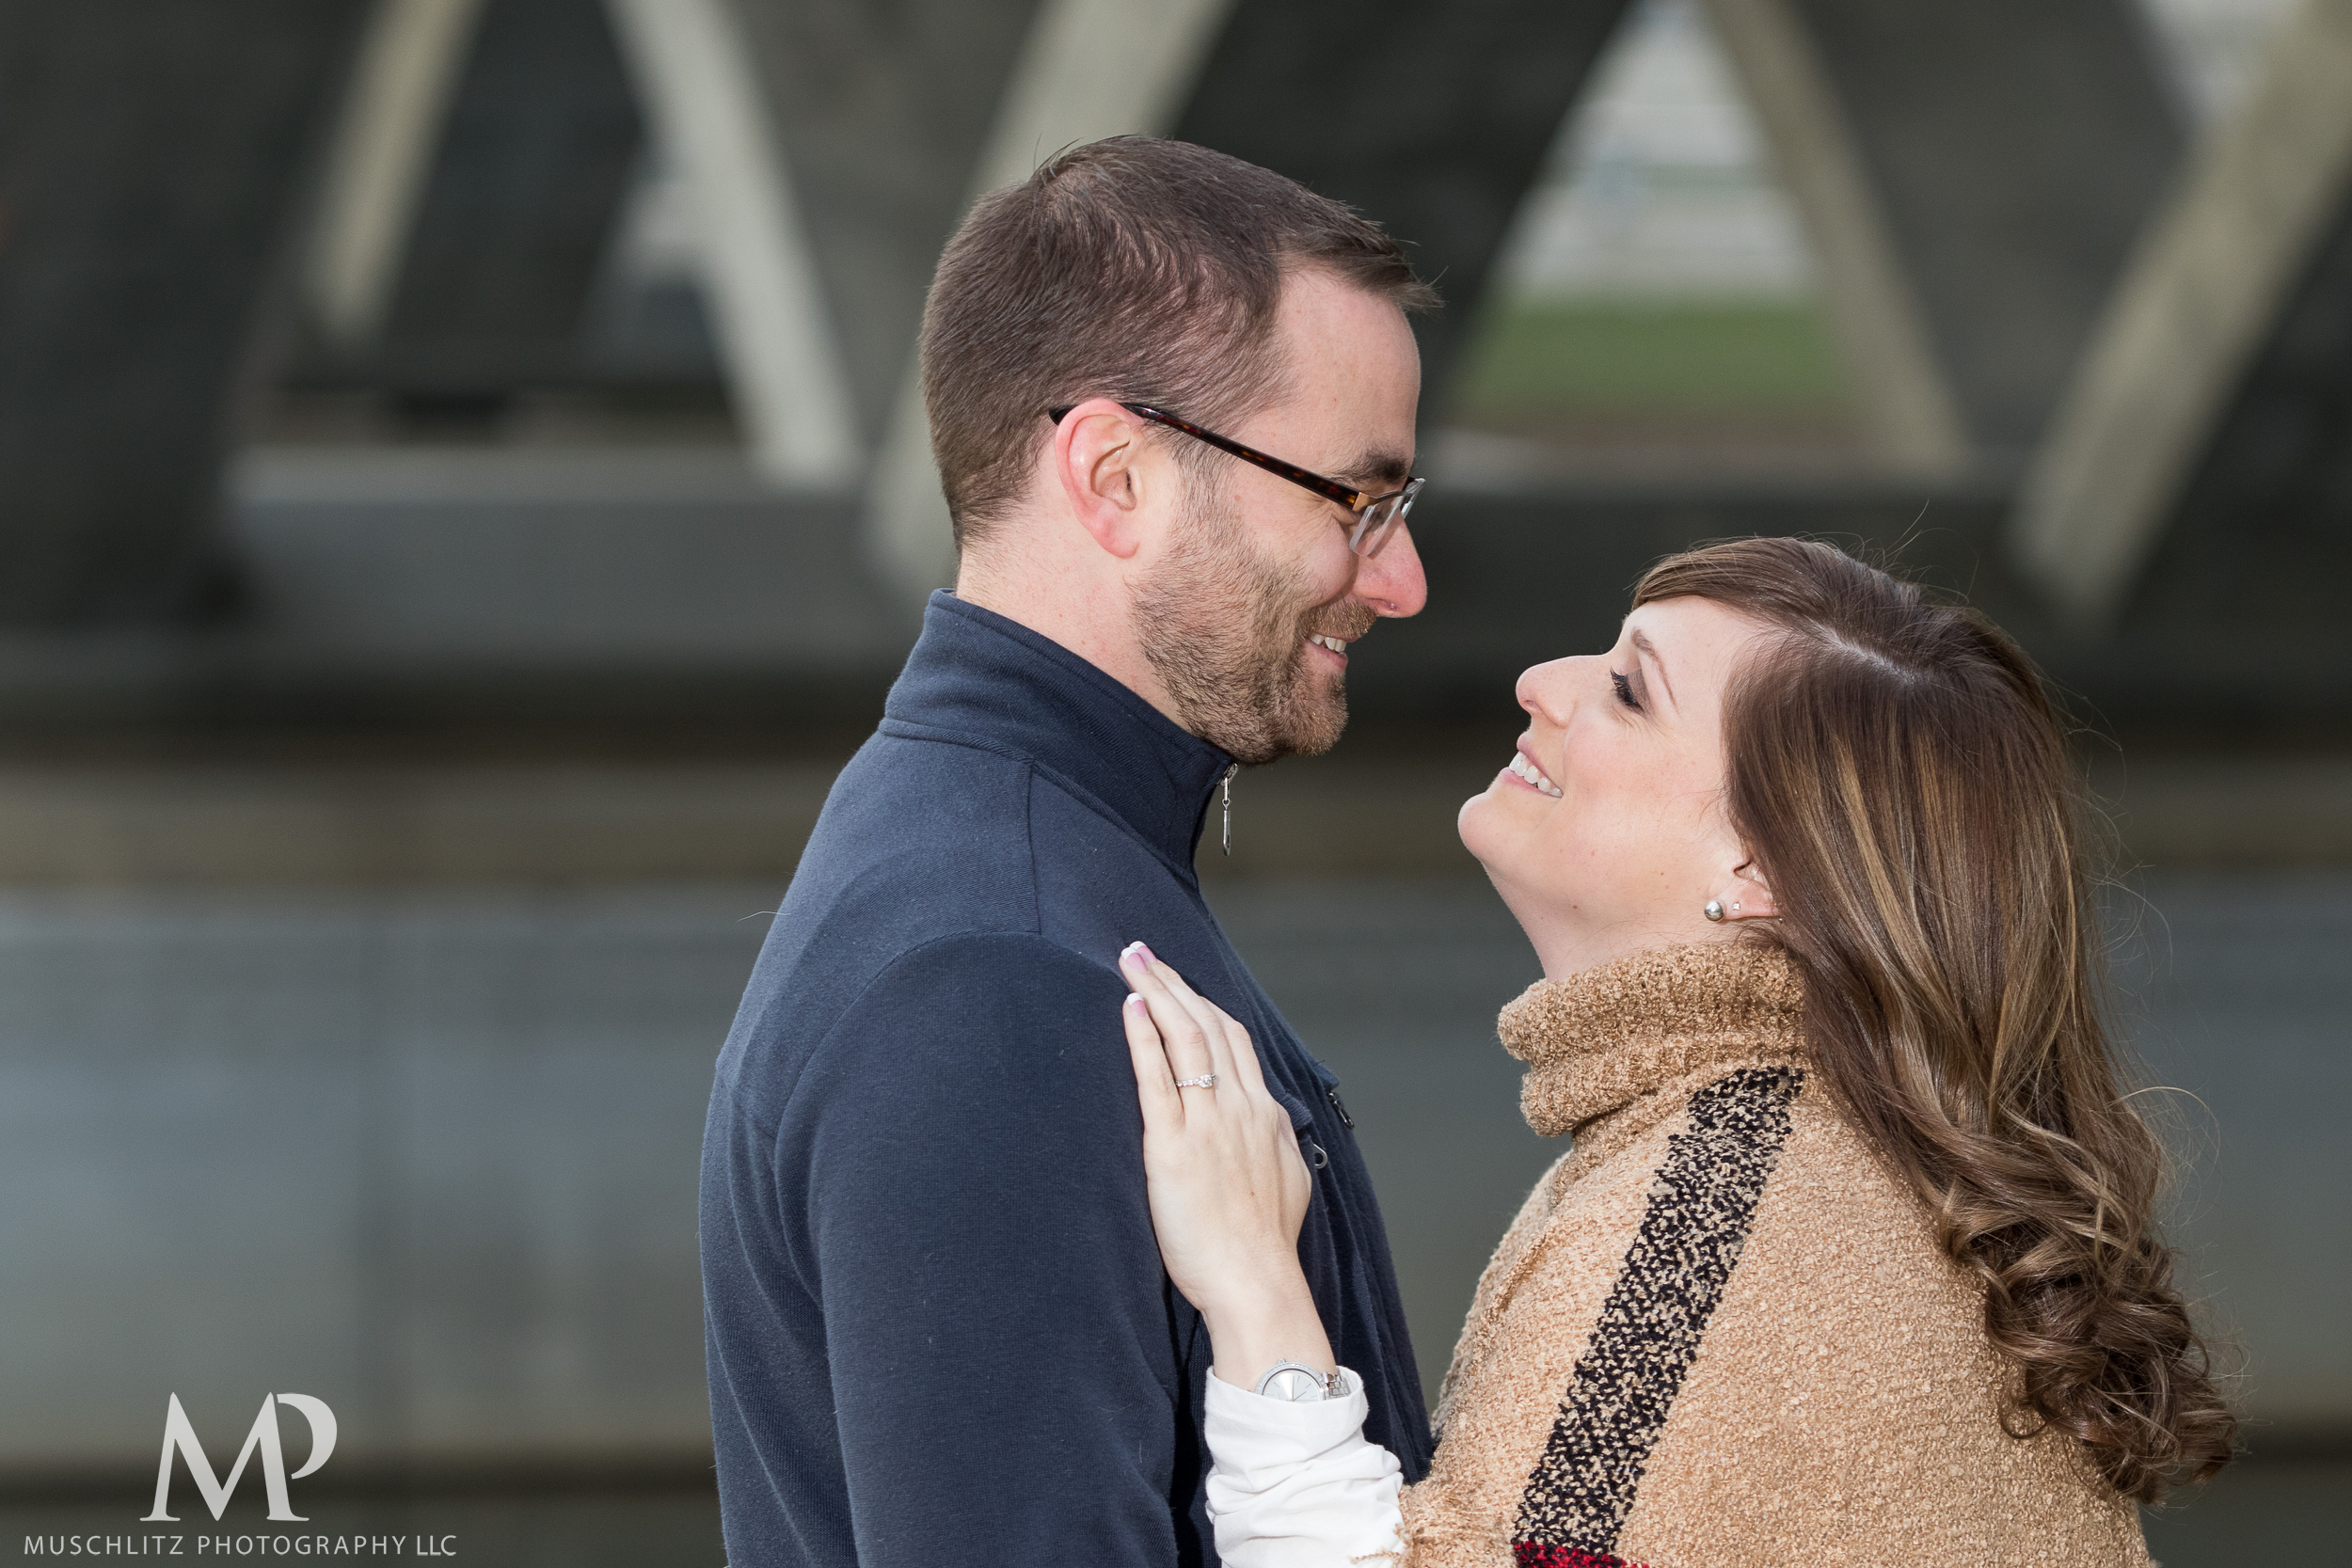 bicentennial-park-engagement-session-holiday-portraits-columbus-ohio-001.JPG